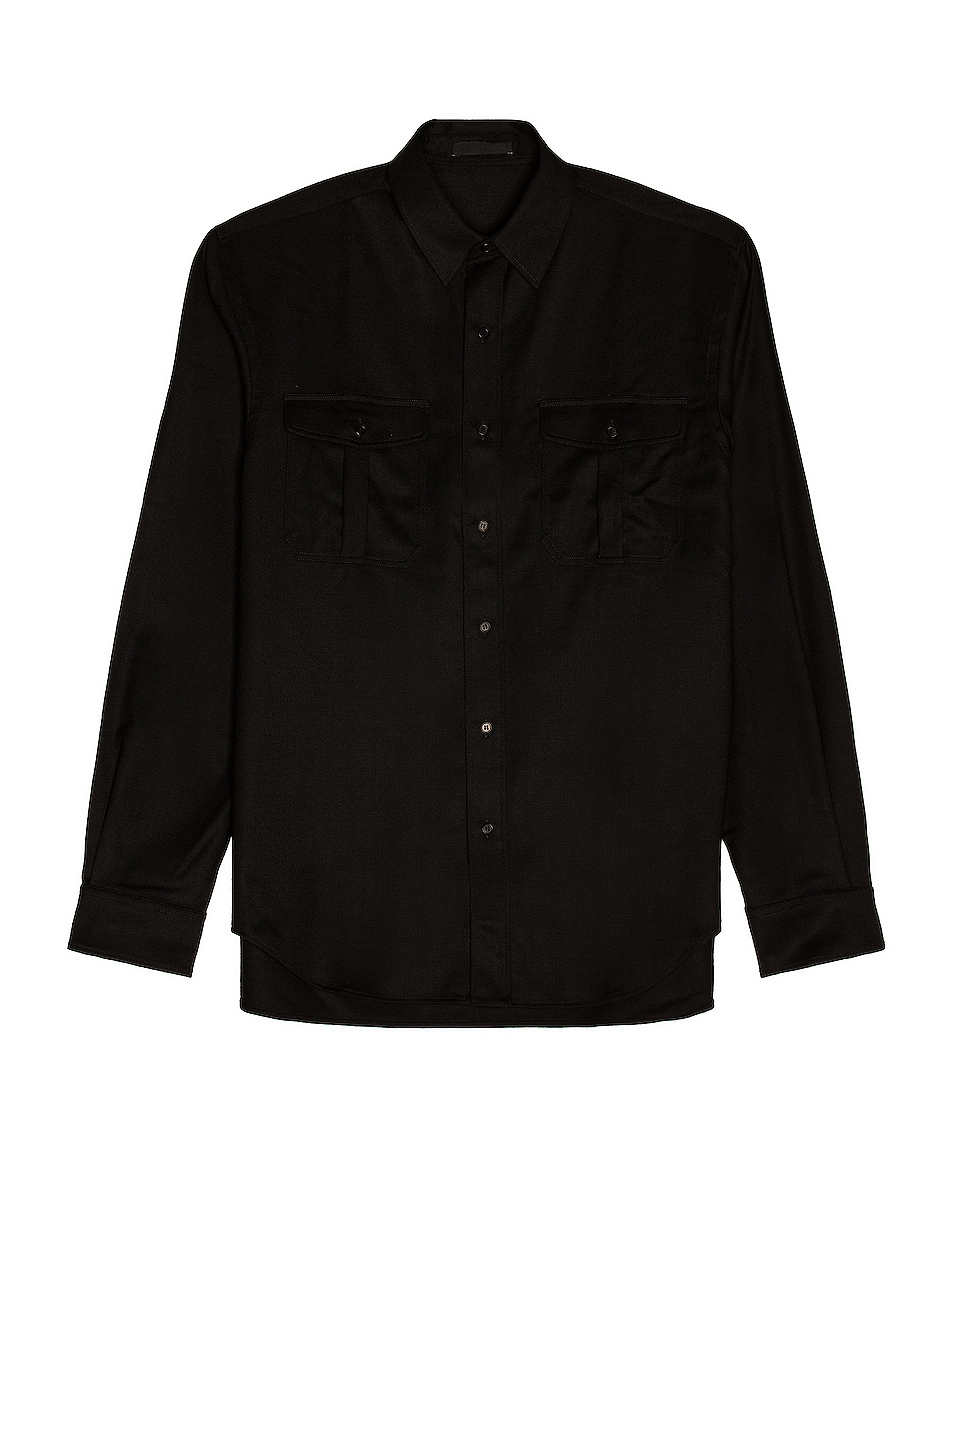 Image 1 of WARDROBE.NYC Flannel Shirt in Black